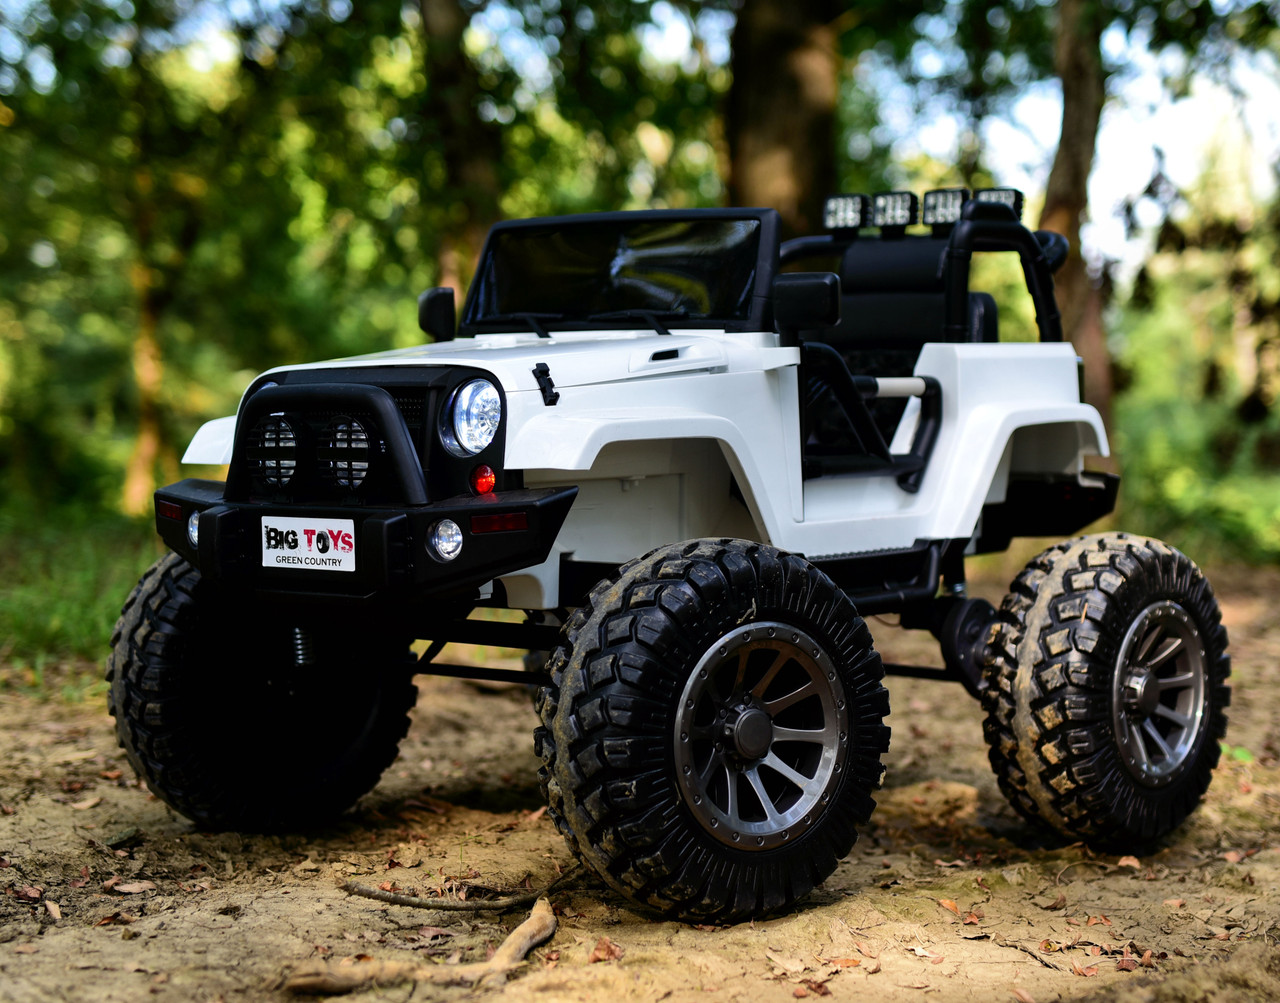 24v Monster Lifted Ride On Crawler Truck W Huge Wheels Parental Rc Remote White Big Toys Green Country